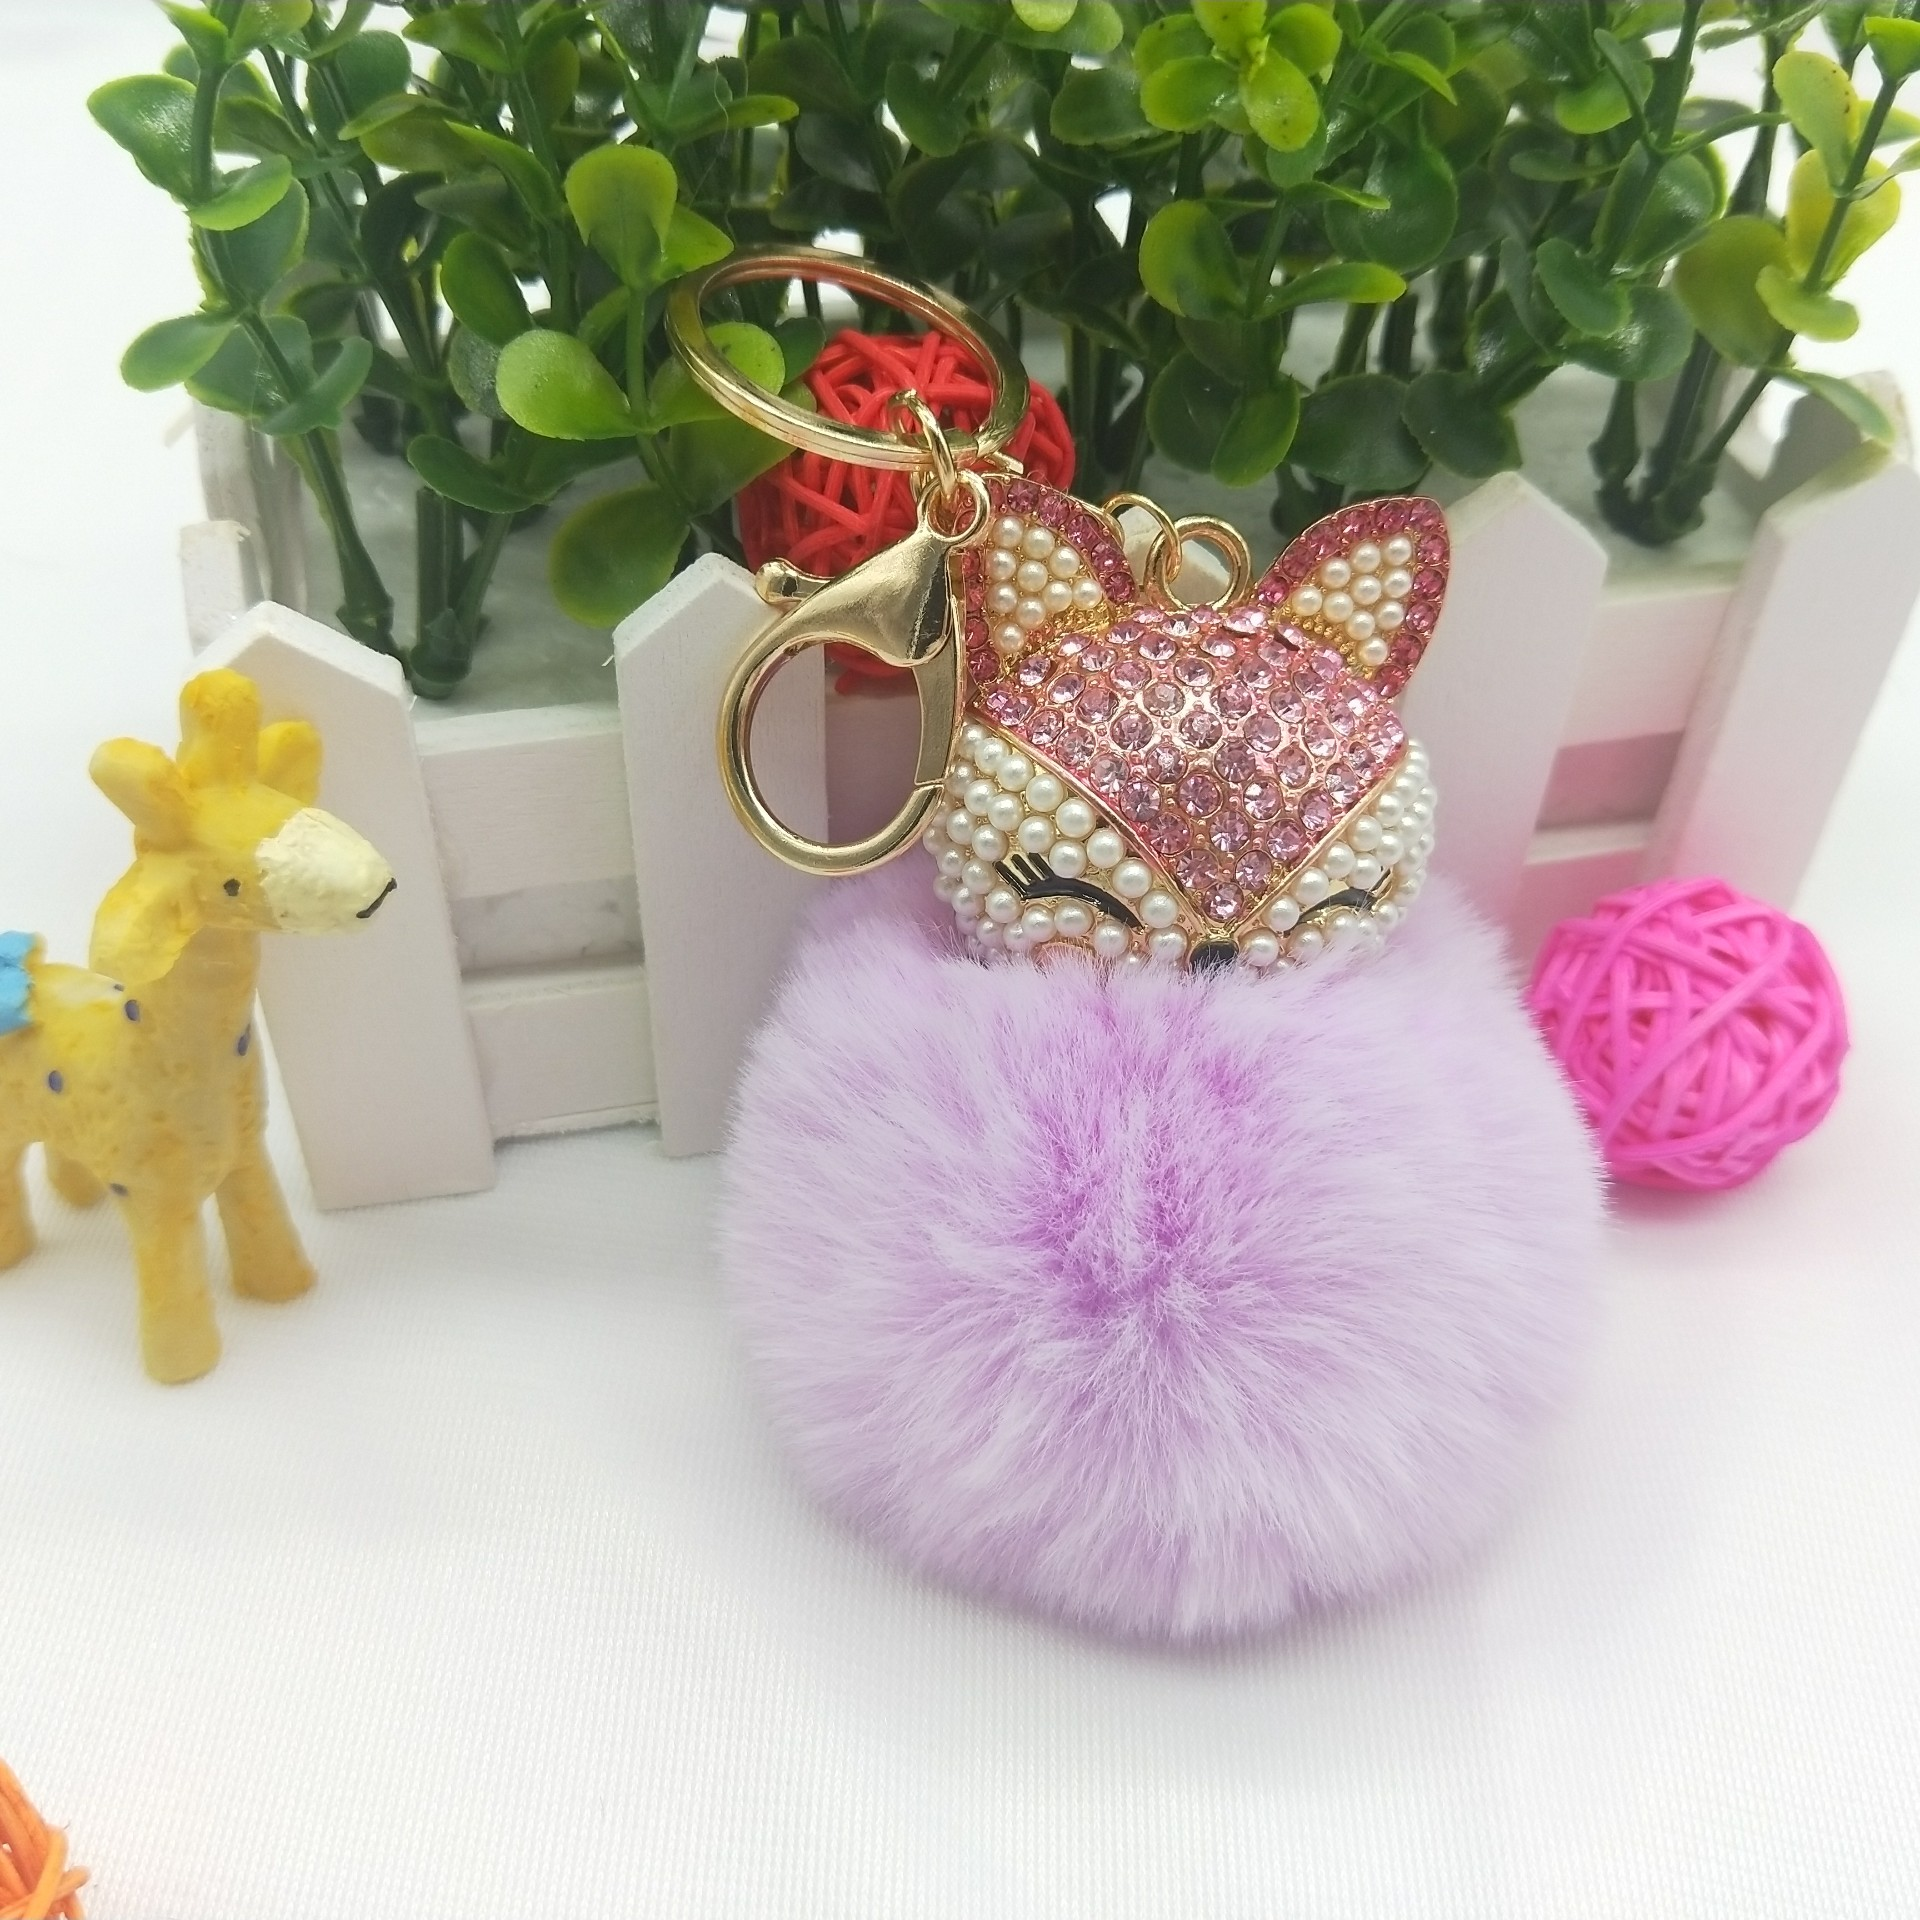 Charms Real Fox Fur Keychain Women Trinkets Suspension On Bags Car Key Chain Key Ring Toy Gifts Llaveros Jewelry Apparel Accessories